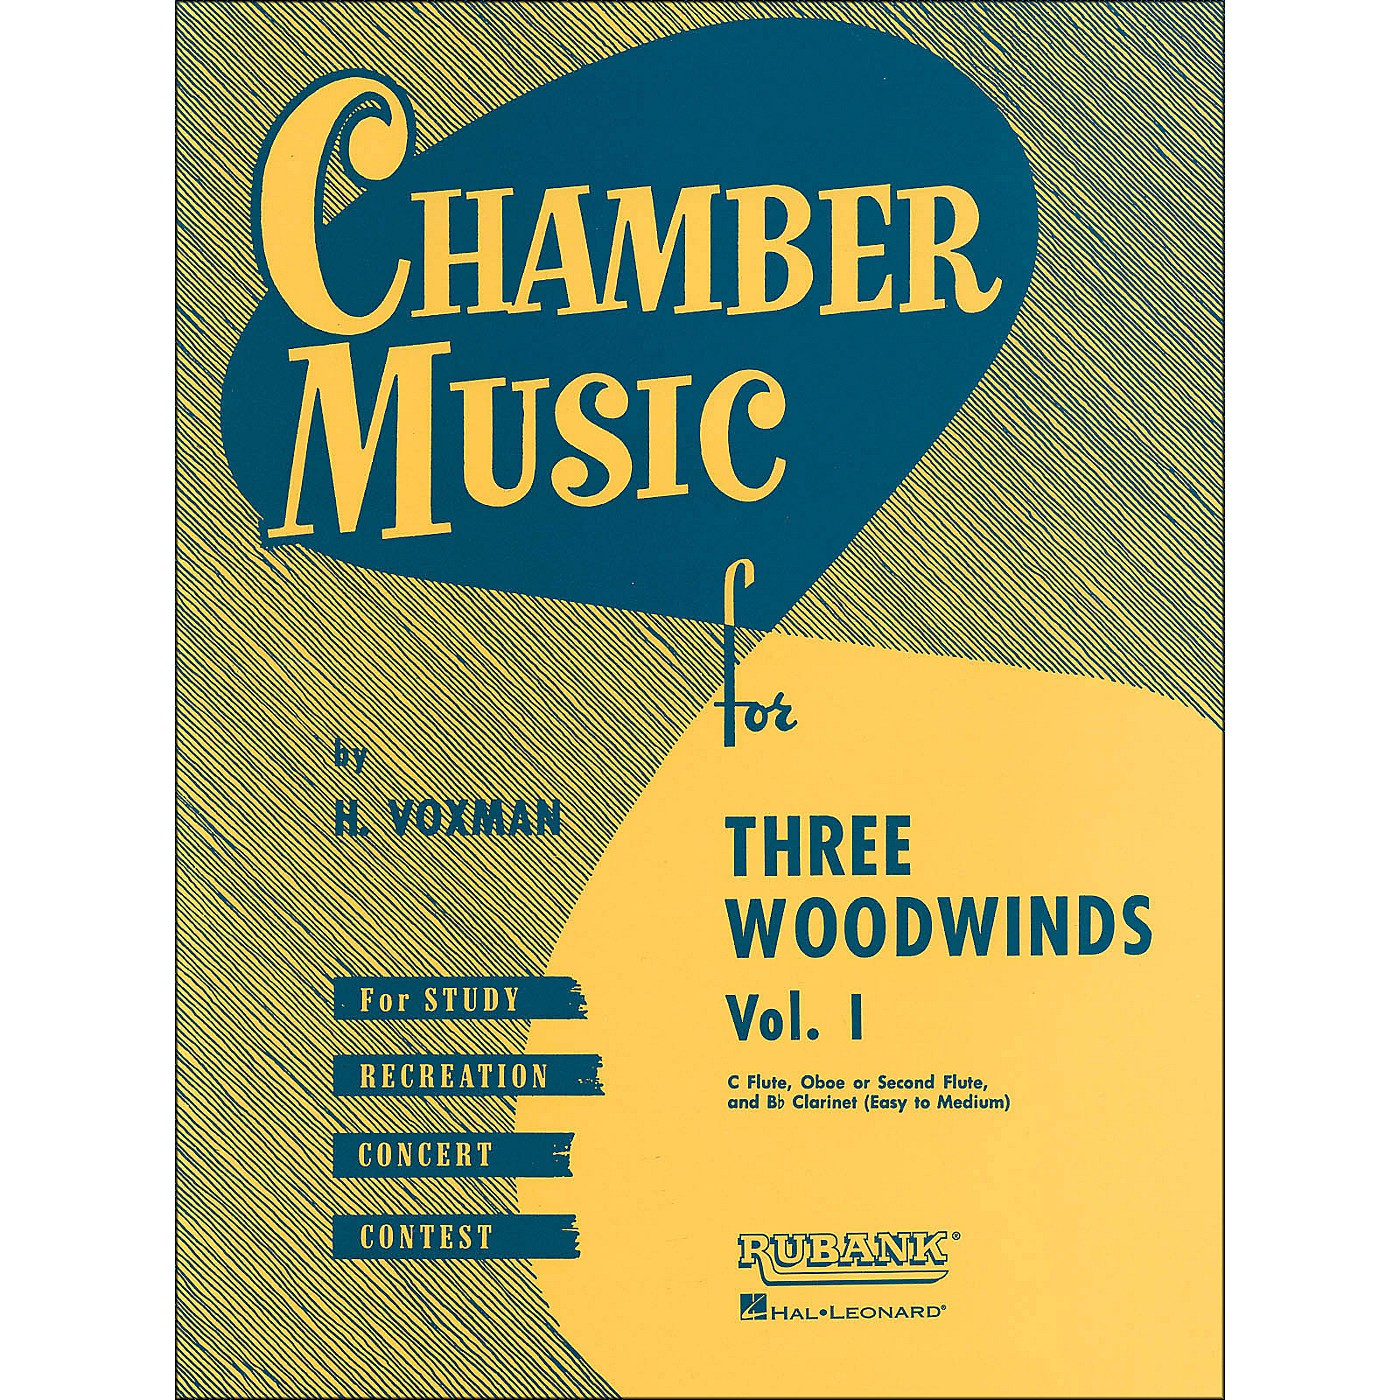 Hal Leonard Chamber Music Series for Three Woodwinds, Vol. 1 Flute, Oboe Or 2nd Flute, And Clarinet thumbnail